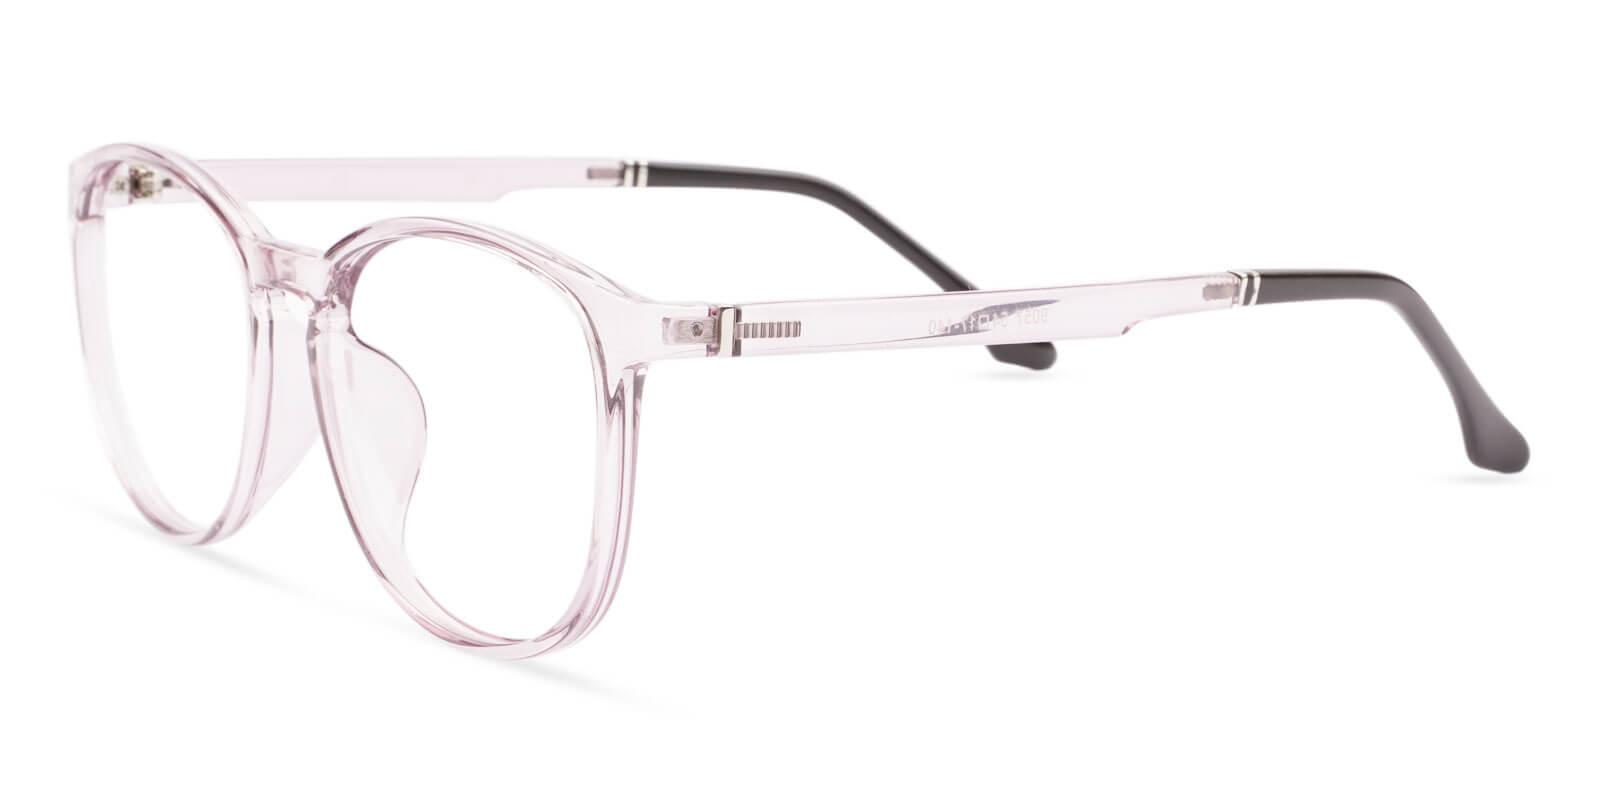 Hailey Purple TR Eyeglasses , UniversalBridgeFit Frames from ABBE Glasses